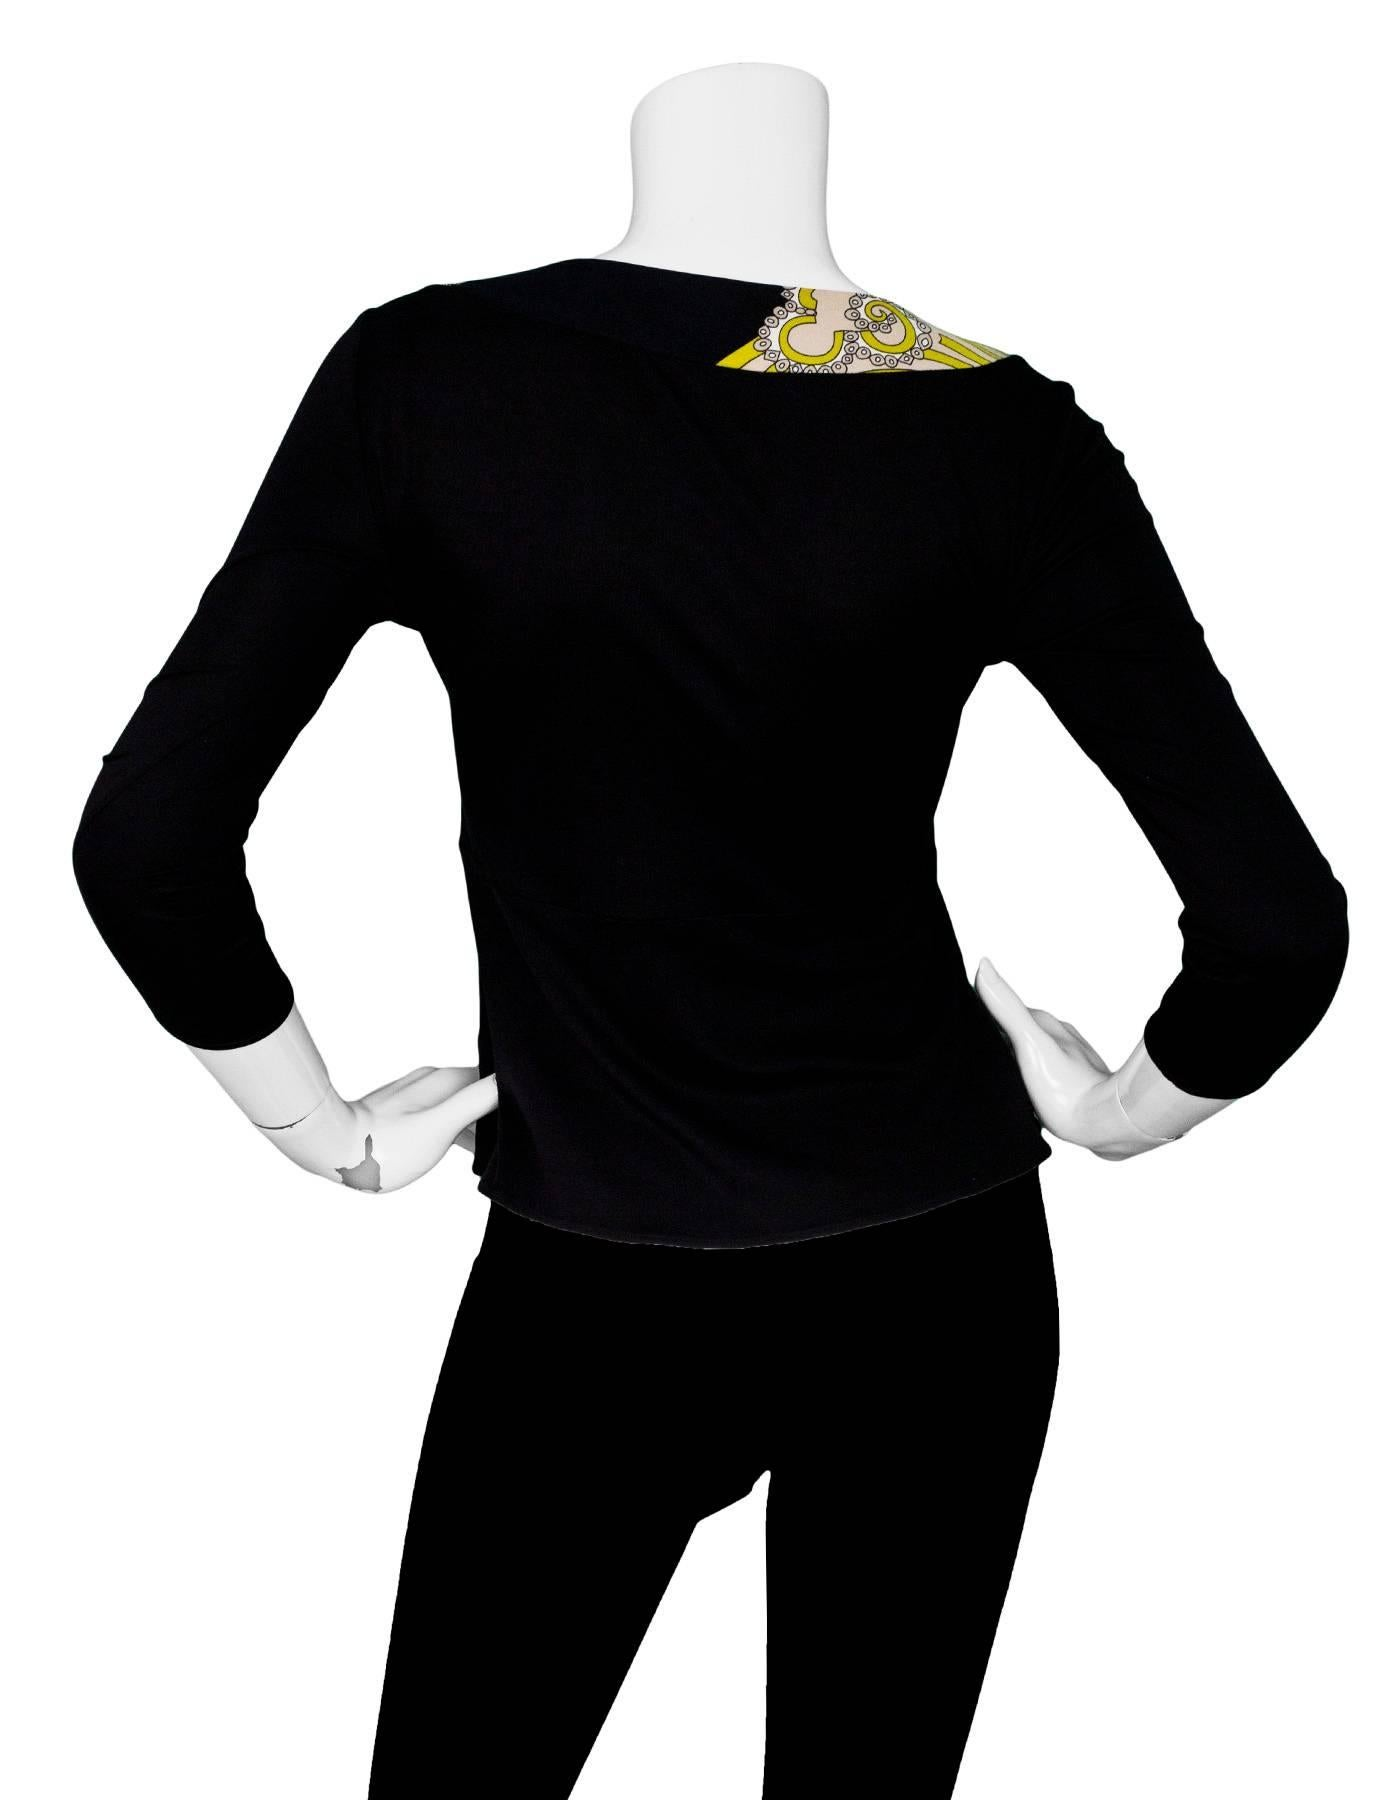 emilio pucci black silk top with keyhole sz 6 for sale at 1stdibs 1970s Bell Bottom Plus Sizes